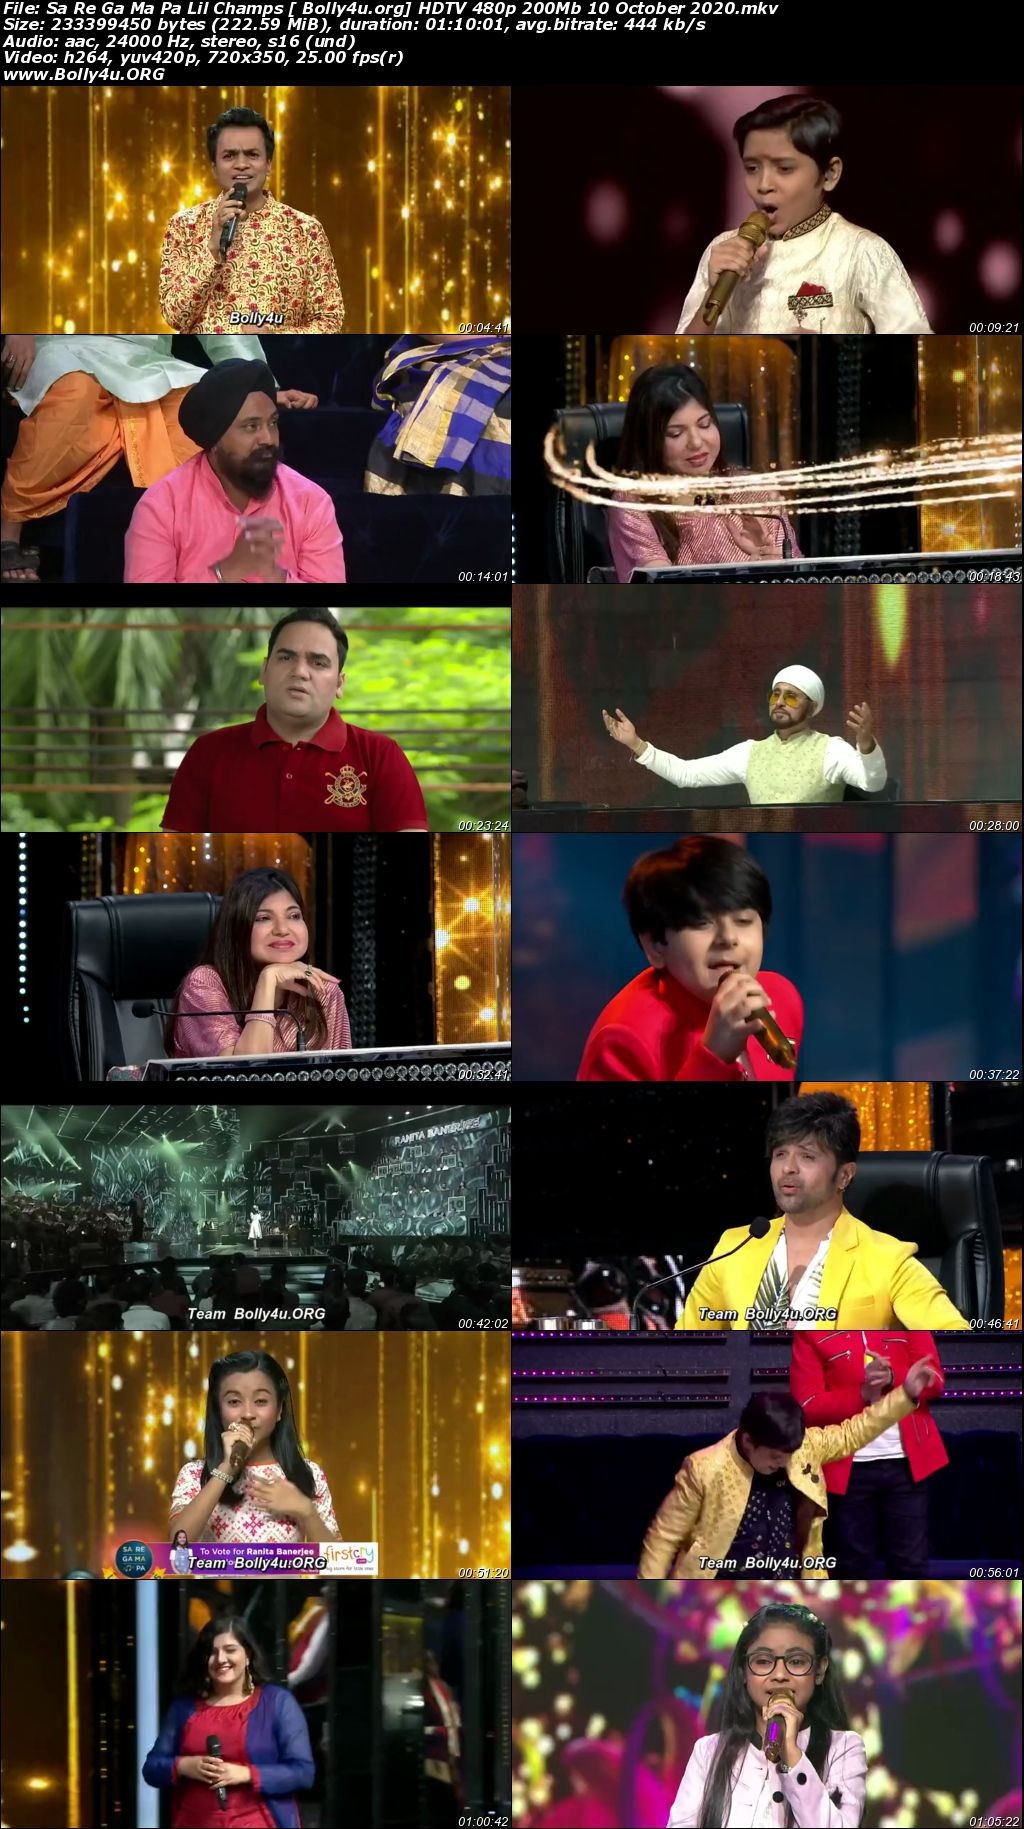 Sa Re Ga Ma Pa Lil Champs HDTV 480p 200Mb 10 October 2020 Download